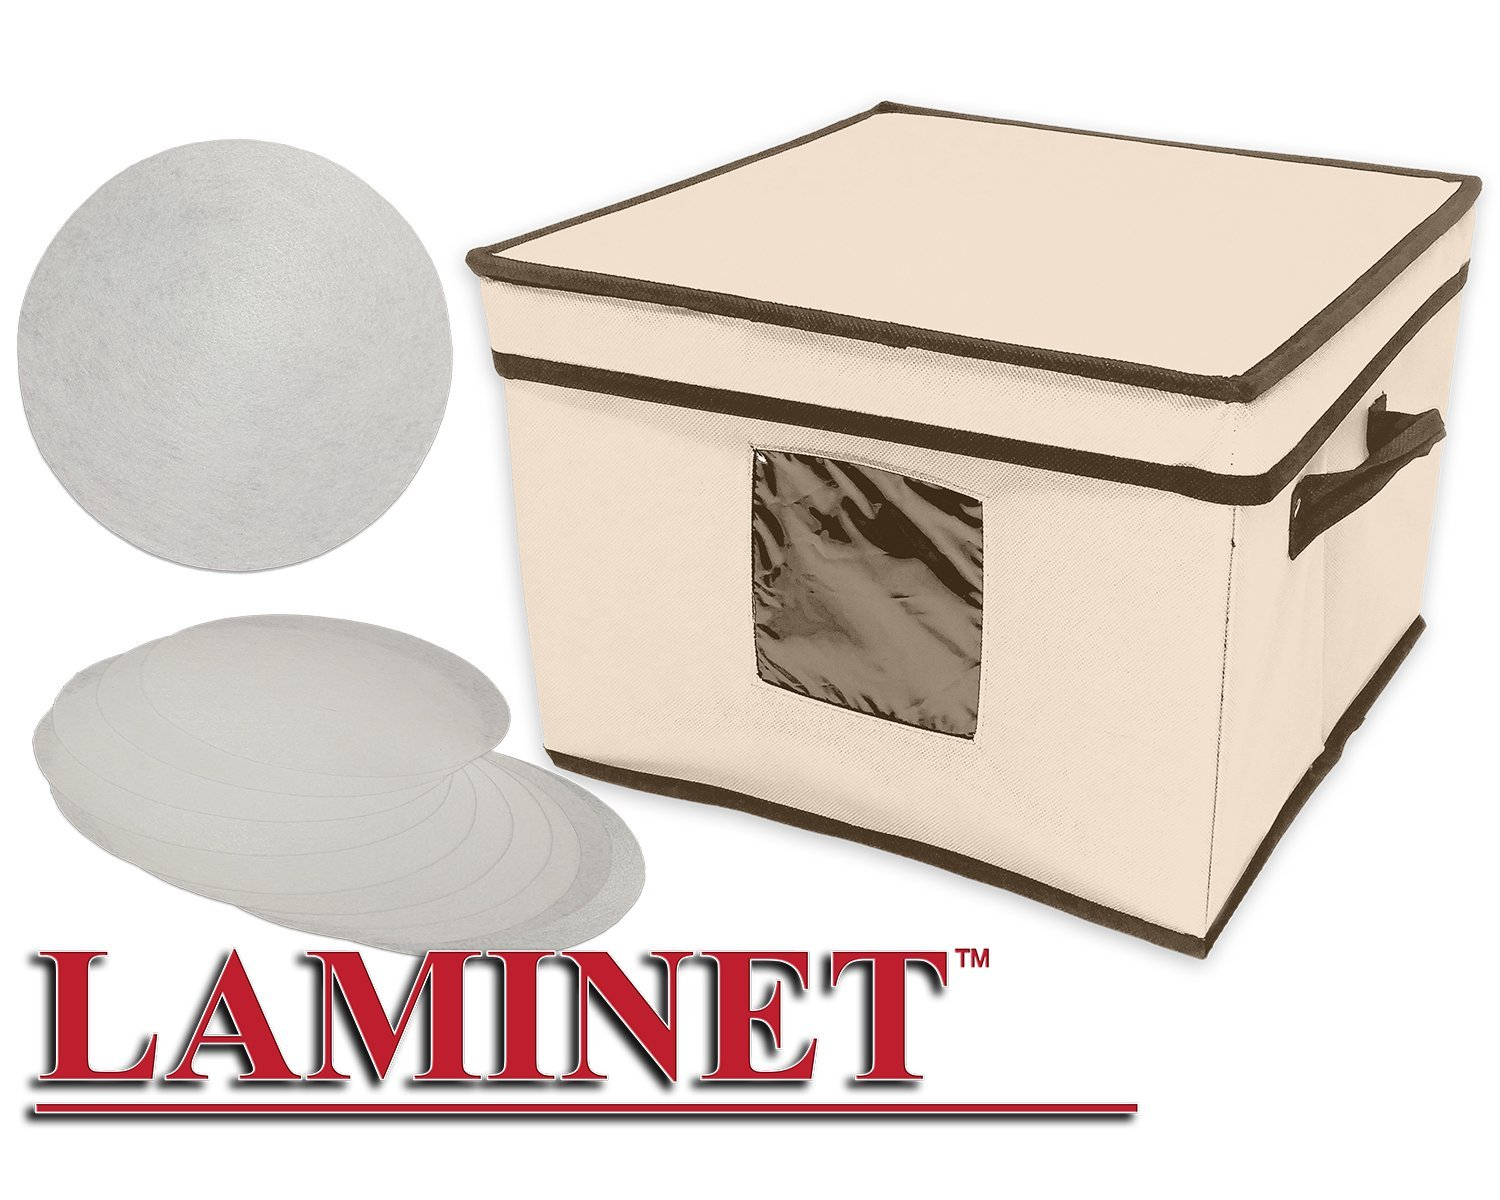 LAMINET Dinnerware Storage Box with Lid & Handles - Fits 12 Dinner Plates Sturdy BEIGE Fabric with BROWN Trim - Includes Plate Separators! - (12'' x 12'' x 8.5''H)